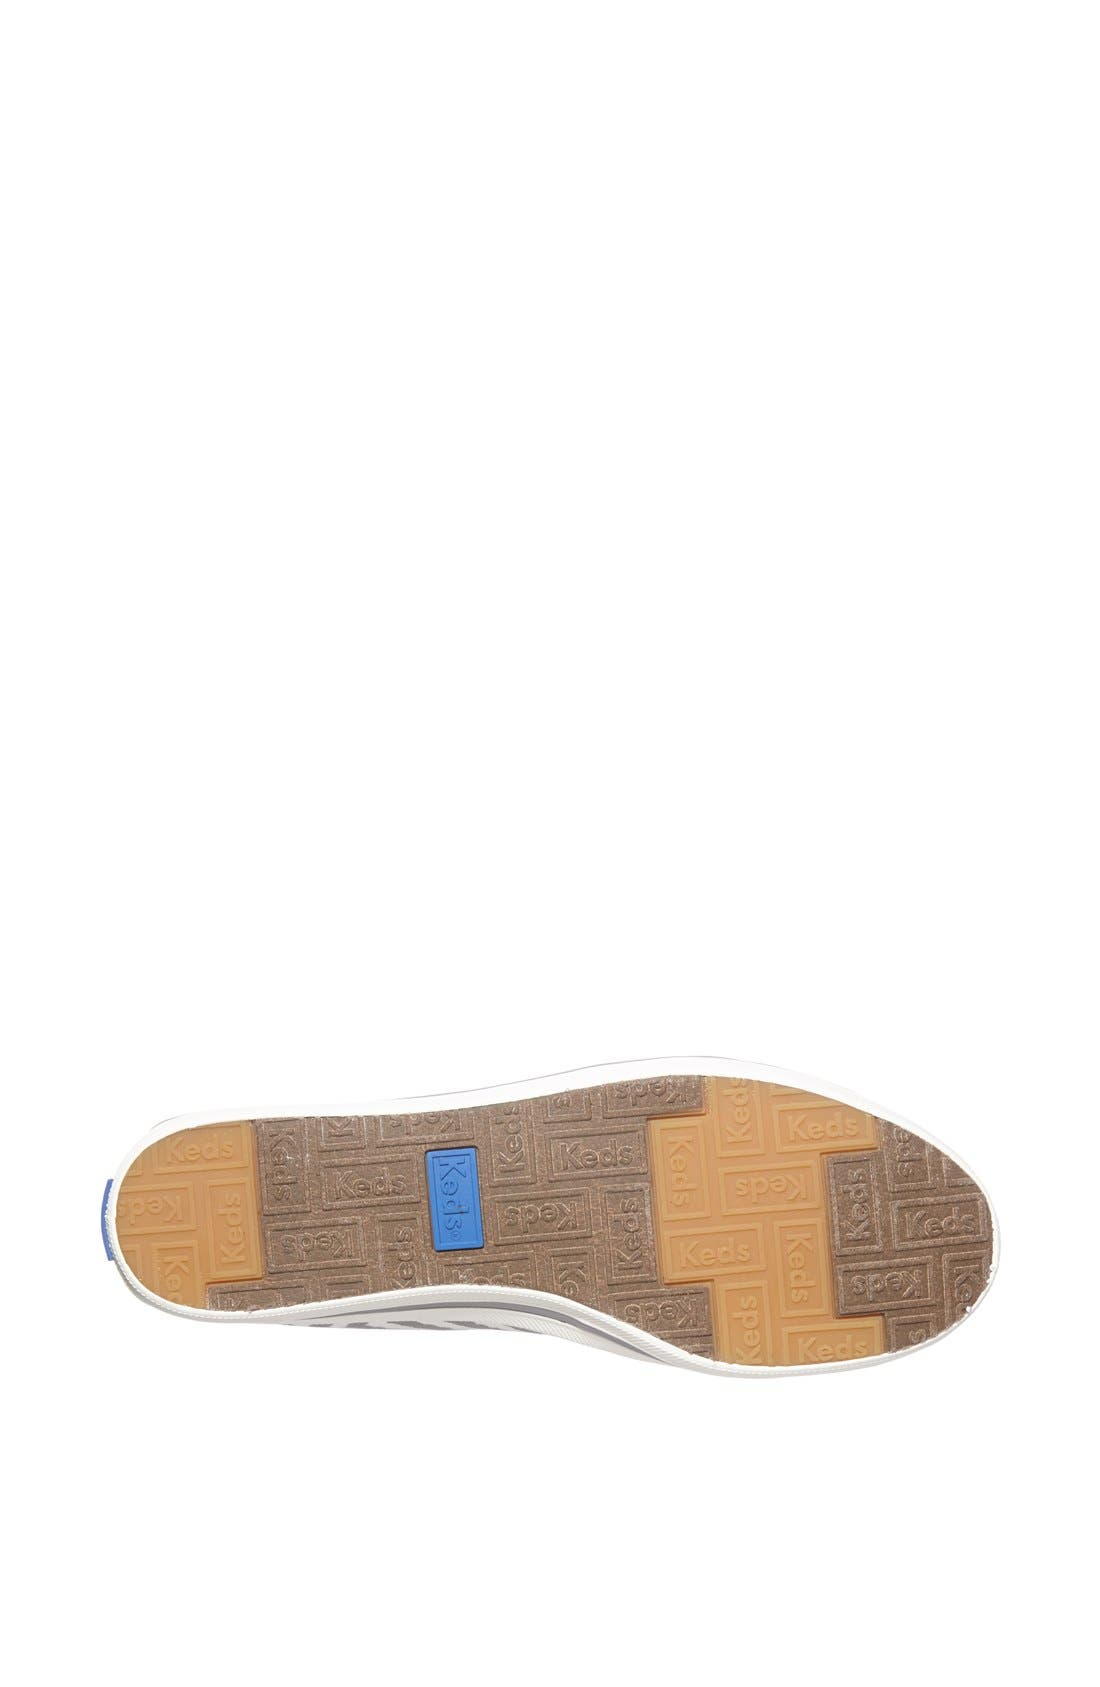 Alternate Image 4  - Keds® 'Crash Back - Zigzag' Canvas Slip-On Sneaker (Women)